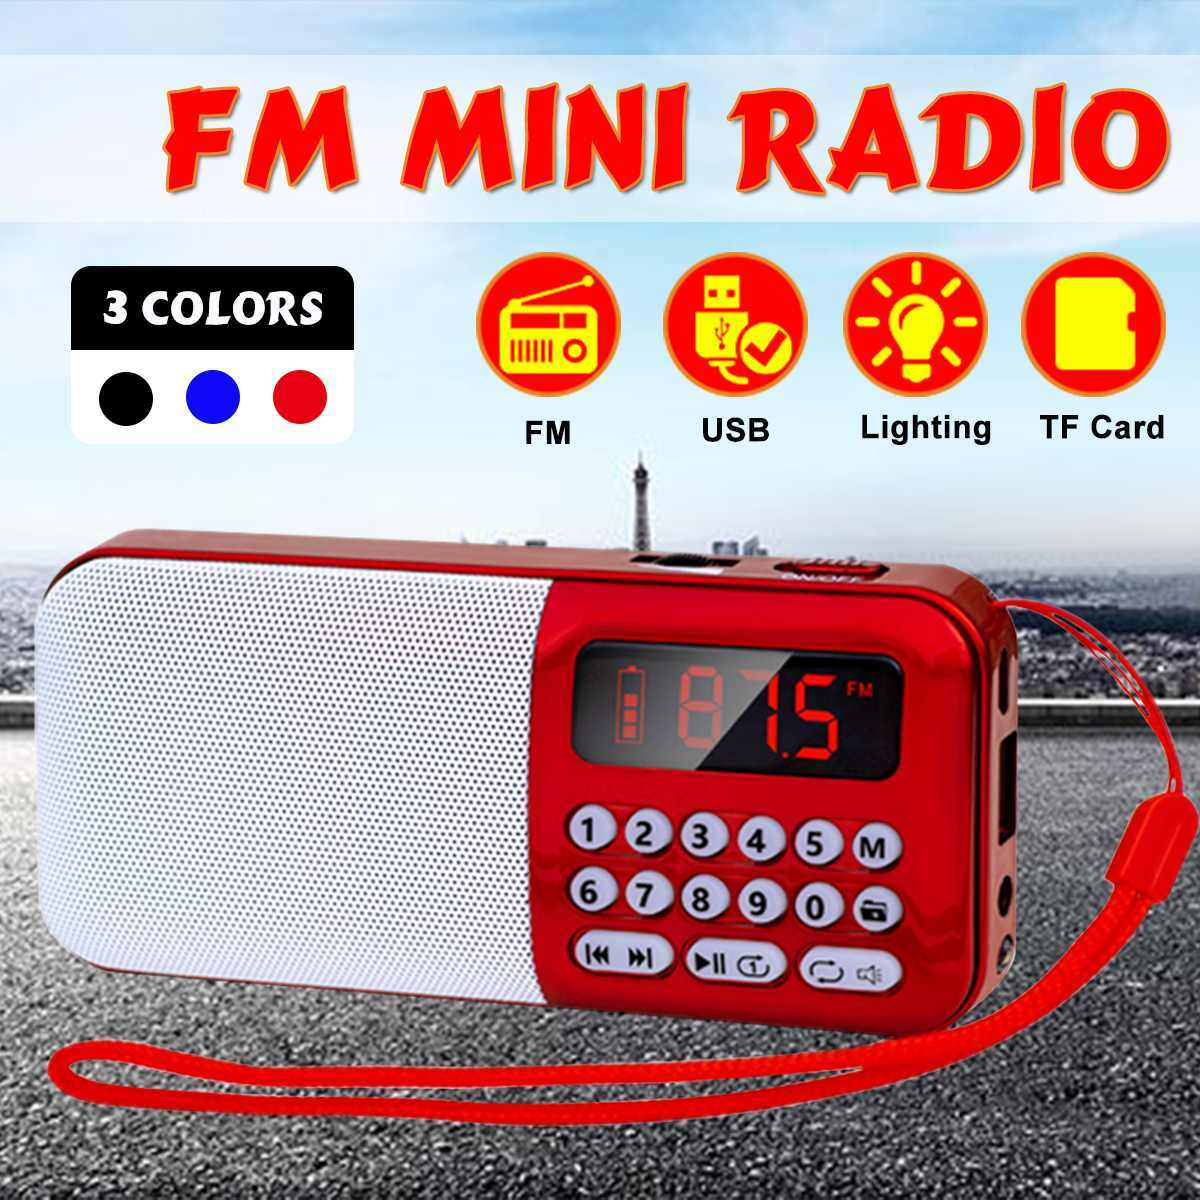 DC 5V FM Radio tarjeta TF USB AUX altavoz reproductor de Audio portátil de Radio de FM Digital USB TF MP3 altavoz reproductor de luz Led